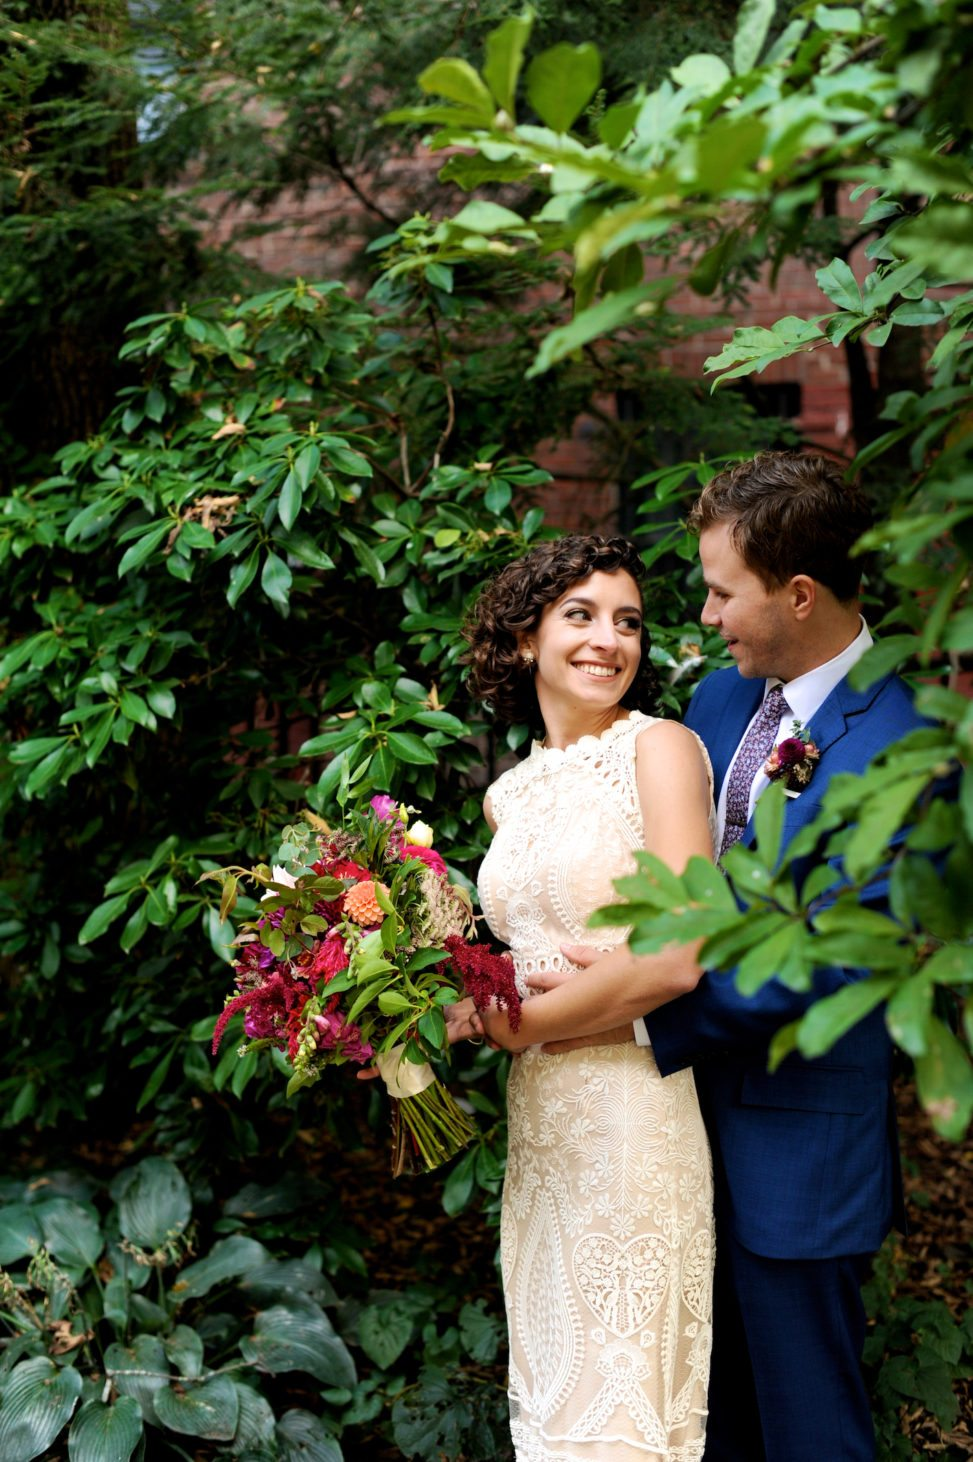 portrait of bride and groom surrounded by greenery